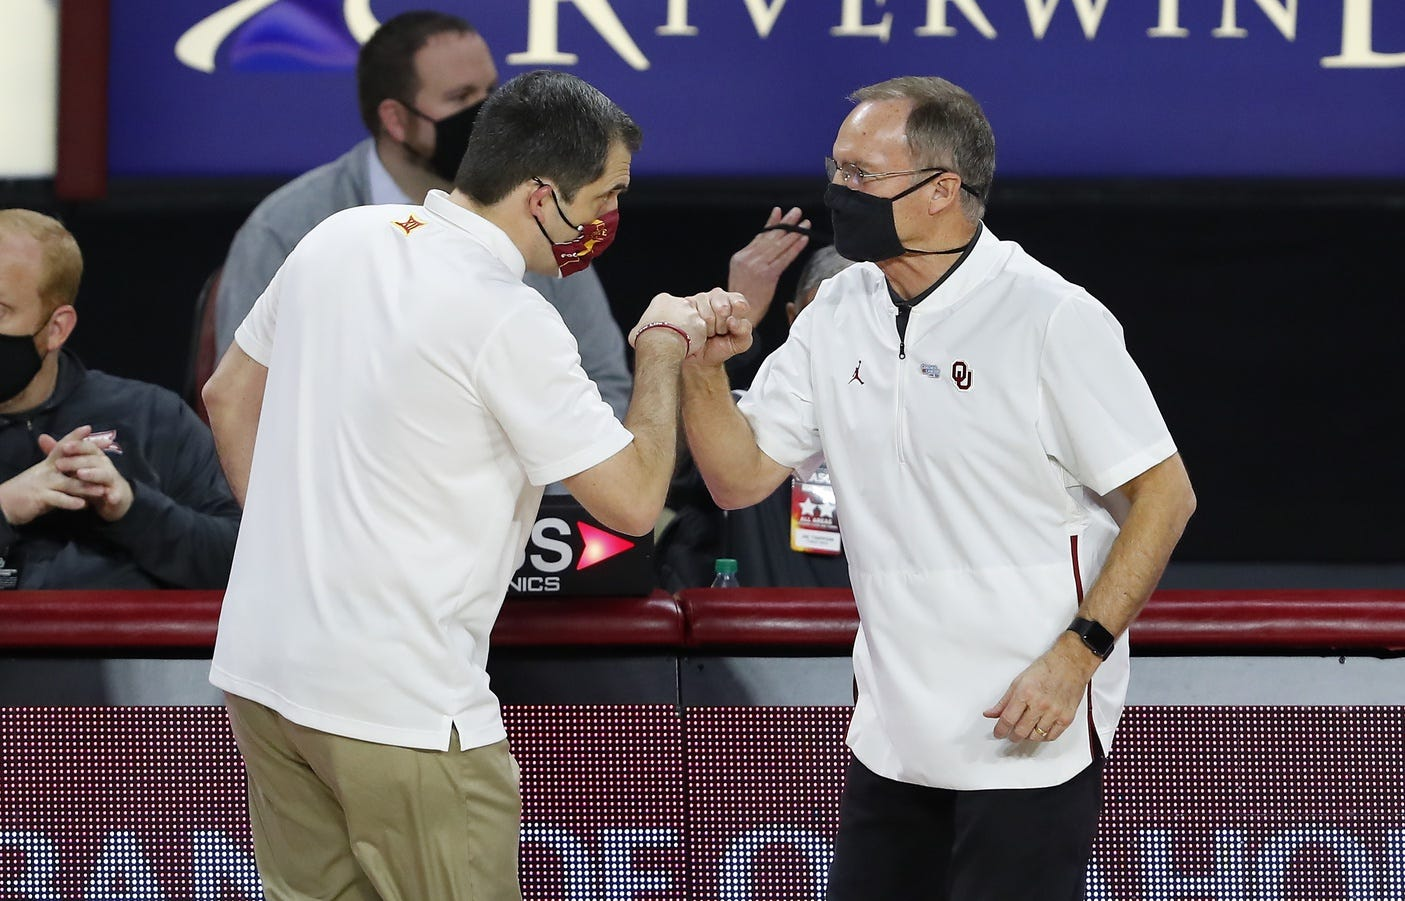 Steve Prohm: Iowa State needs to be strong on defense to compete with Oklahoma